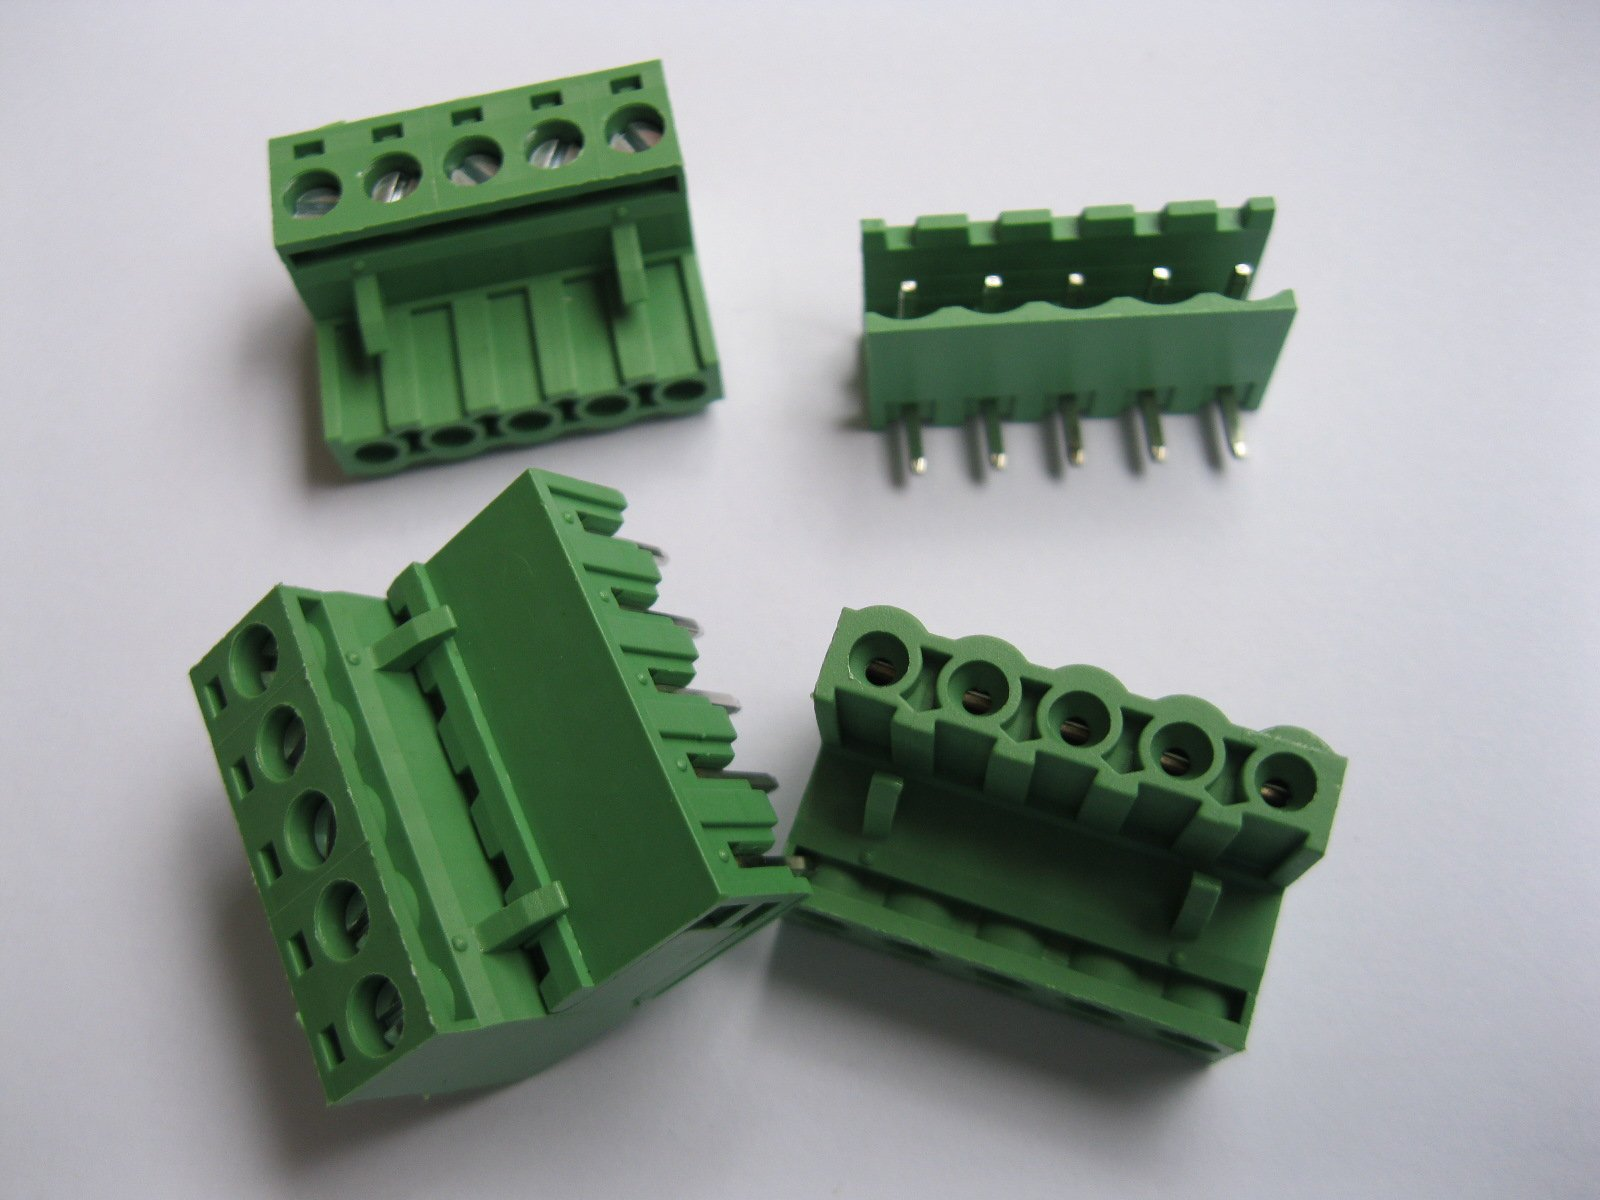 12 Pcs Pitch 5.08mm Angle 5 way/pin Screw Terminal Block Connector w/ Angle-pin Green Color Pluggable Type Skywalking by Skywalking